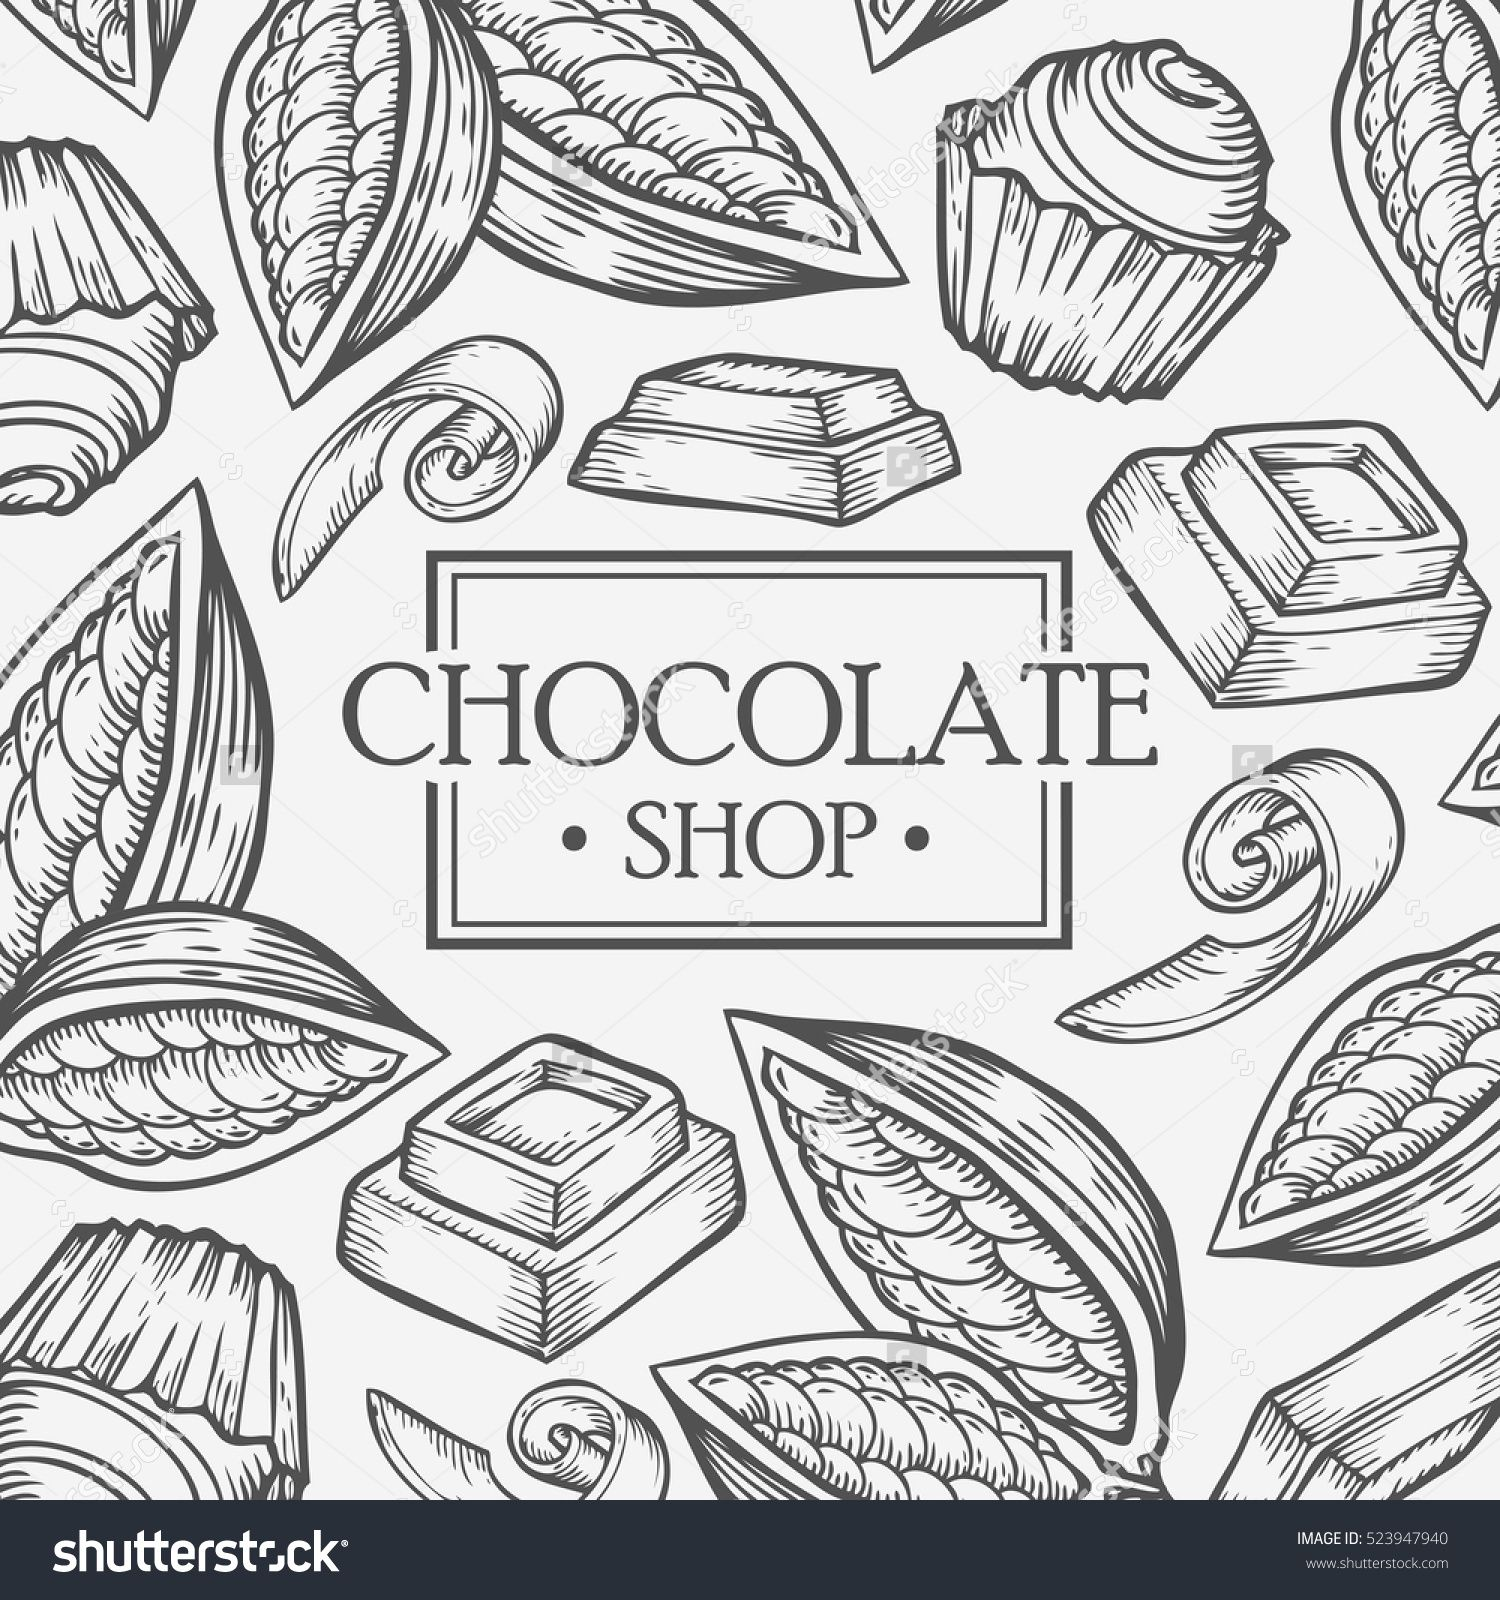 Drawing Smooth Lines With Cocos D : Organic cocoa cacao chocolate shop leaf bean vector hand